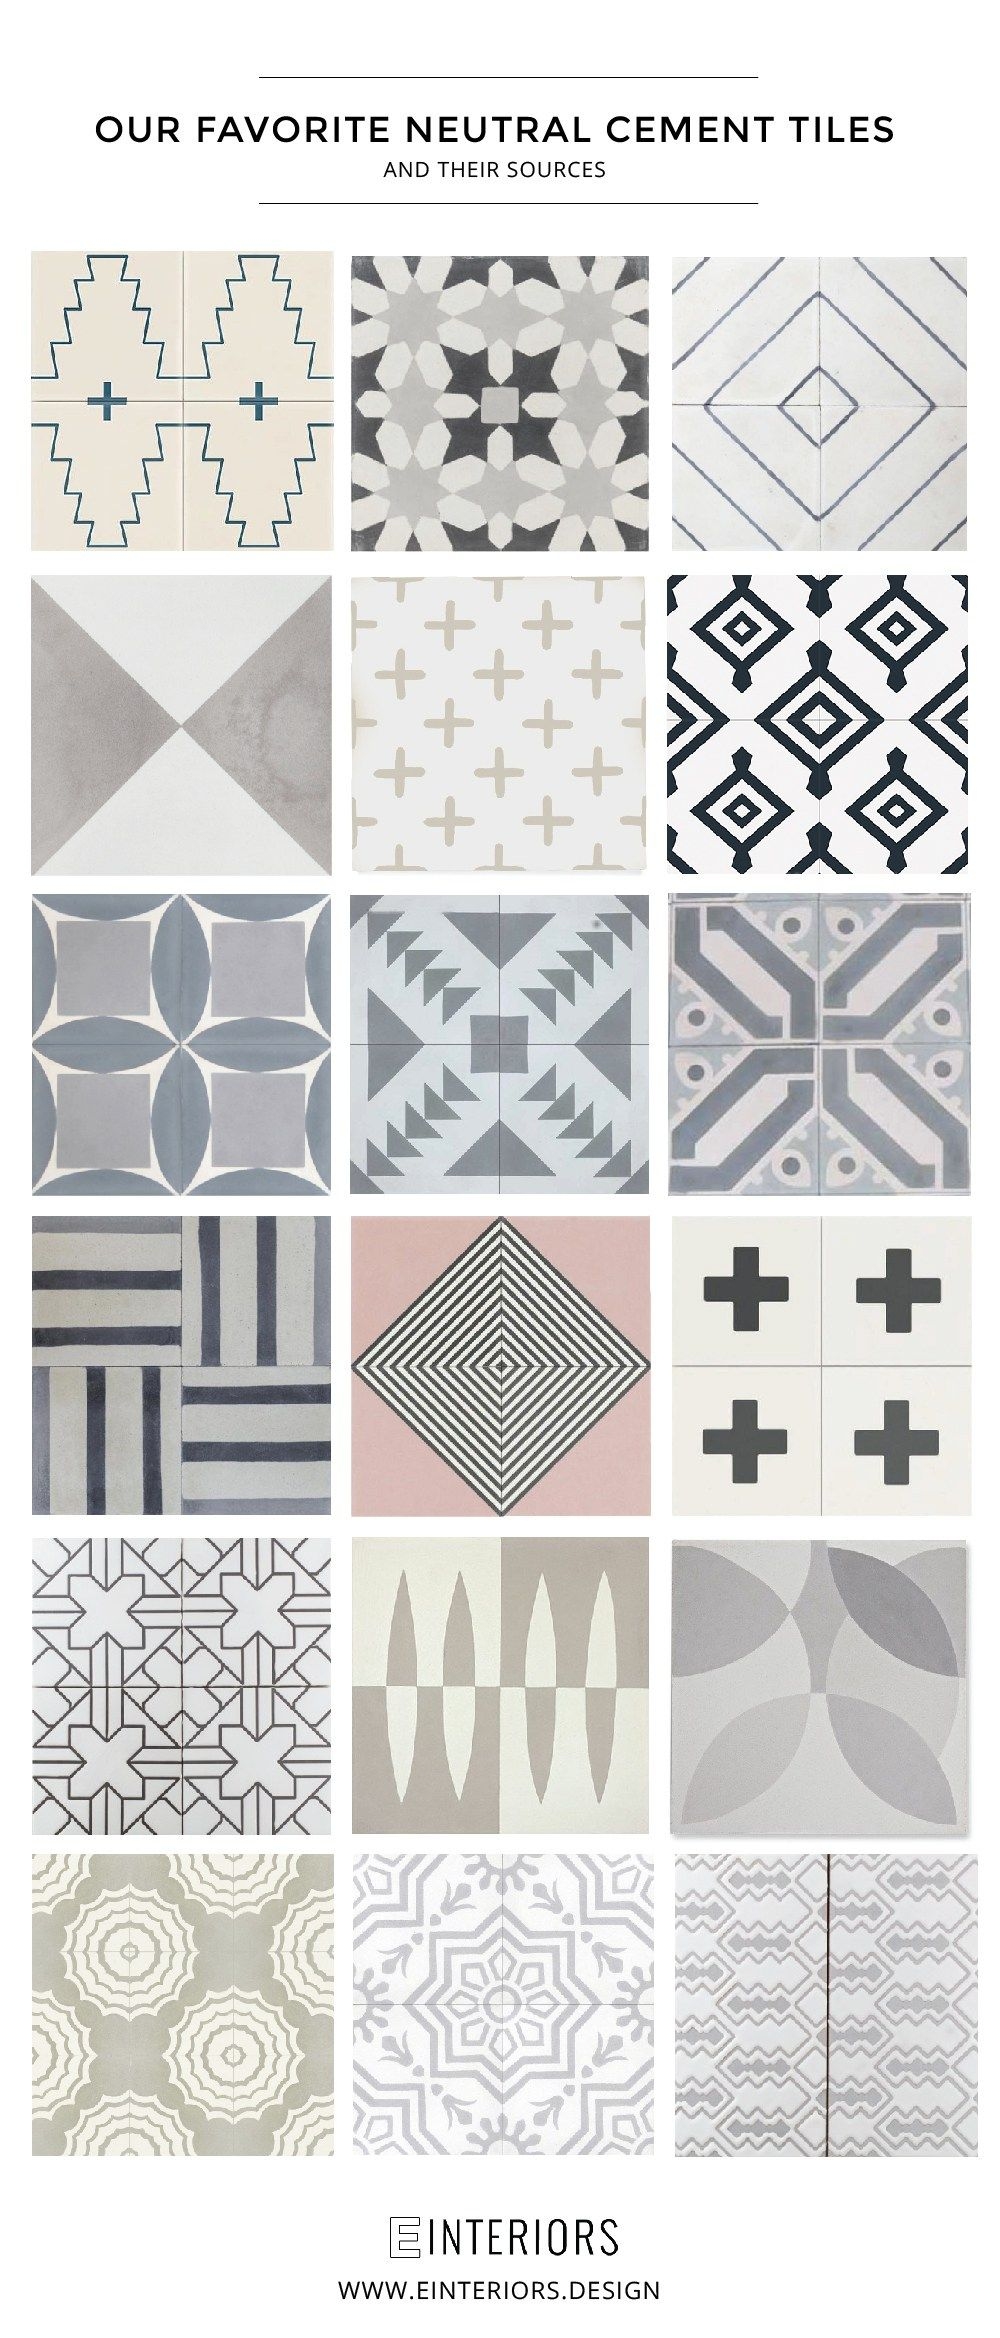 WHERE TO BUY CEMENT TILES + OUR FAVORITES | HOME DESIGN & DECOR ...